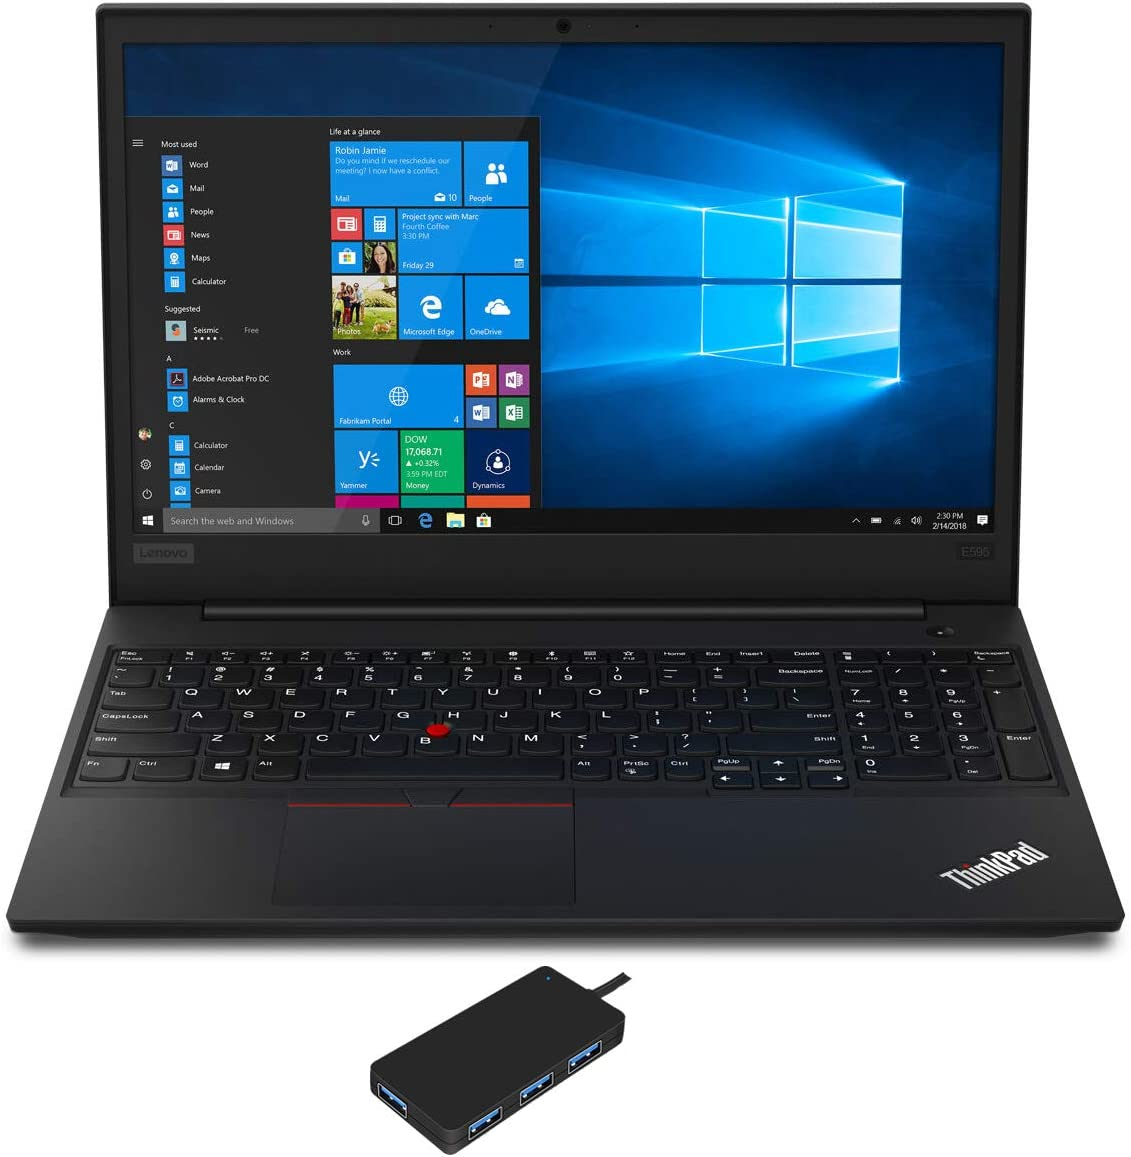 "Lenovo ThinkPad E595 Laptop (AMD Ryzen 7 3700U 4-Core, 64GB RAM, 1TB SATA SSD, AMD Radeon RX Vega 10, 15.6"" Full HD (1920x1080), WiFi, Bluetooth, Webcam, 2xUSB 3.1, Win 10 Pro) with USB3.0 Hub"